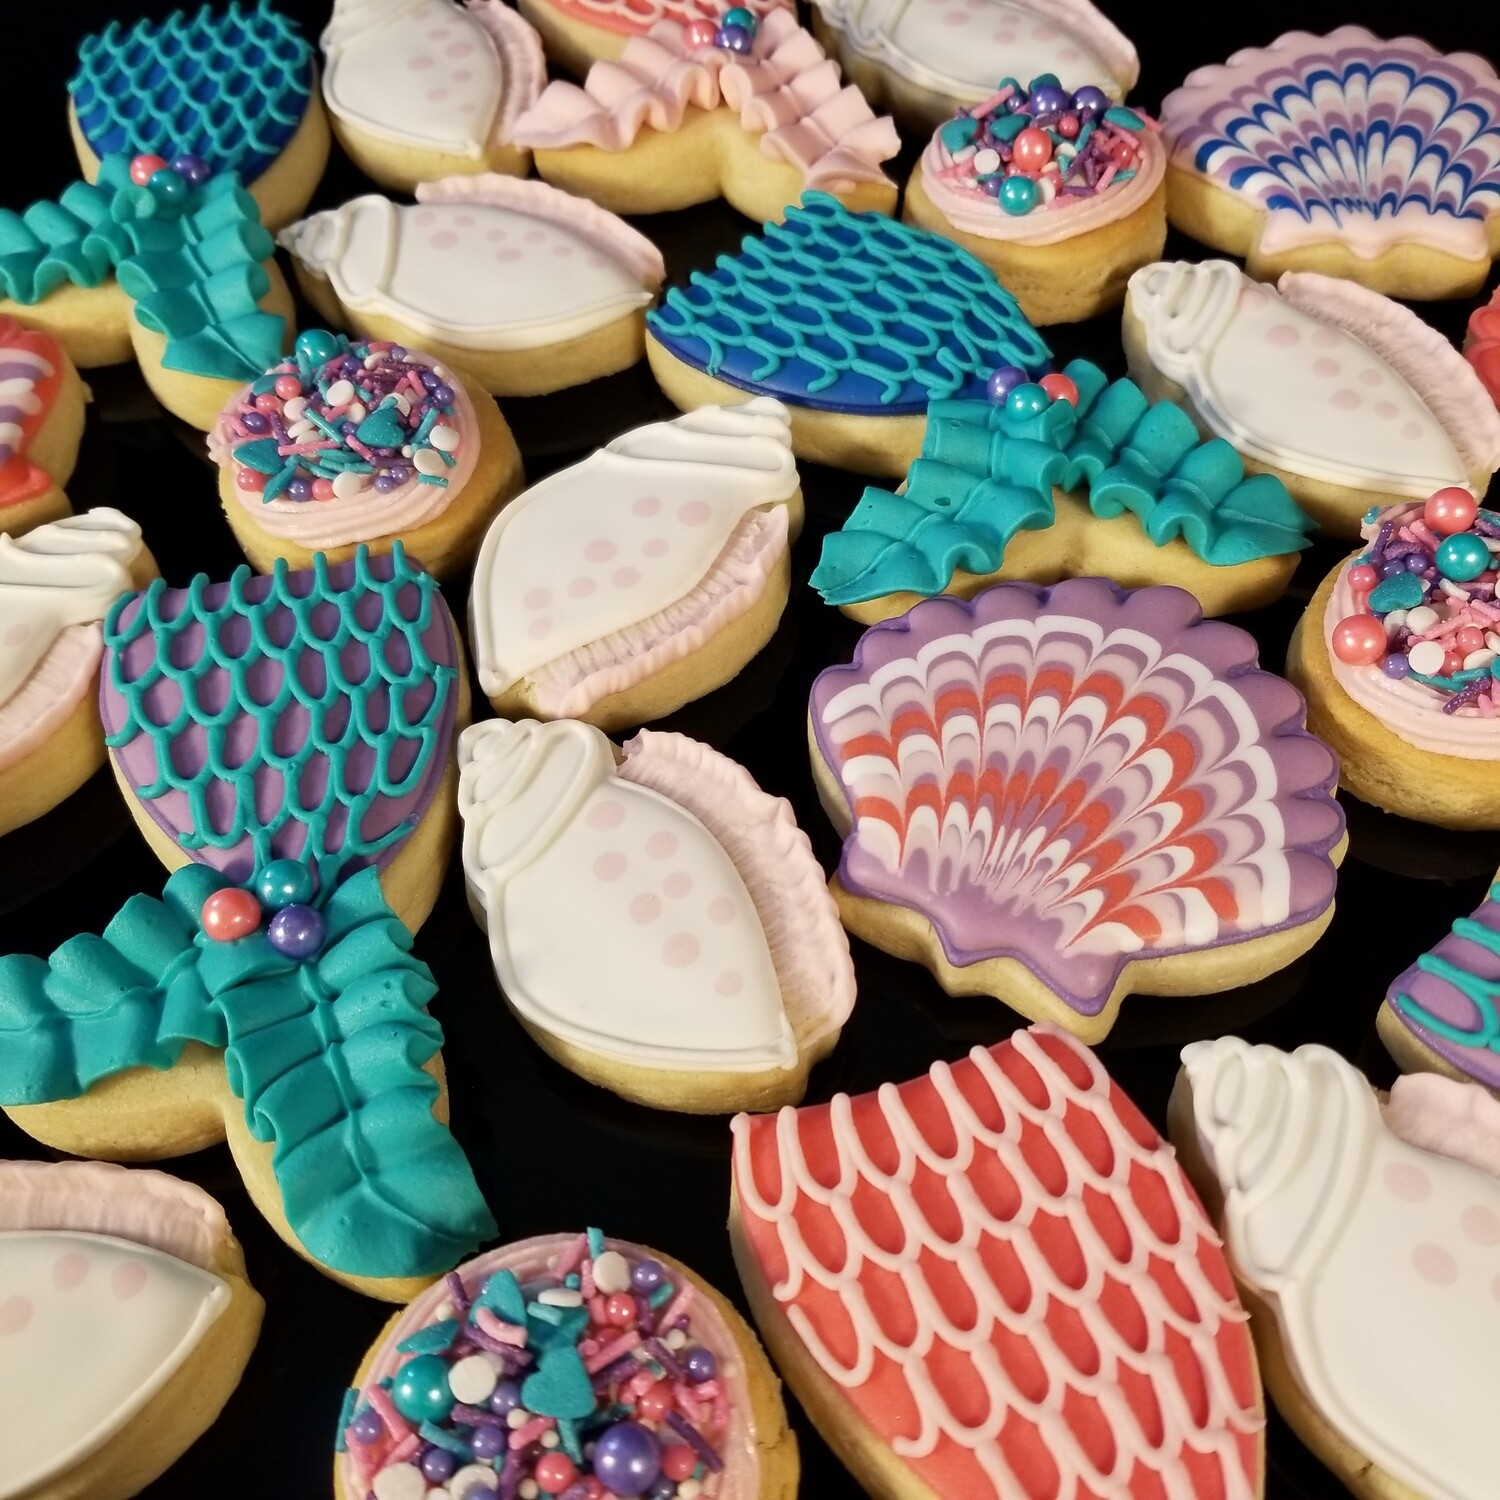 'Mermaid Tails and Shells Decorating Workshop - FRIDAY, JUNE 5th at 6:30 p.m. (THE COOKIE DECORATING STUDIO)